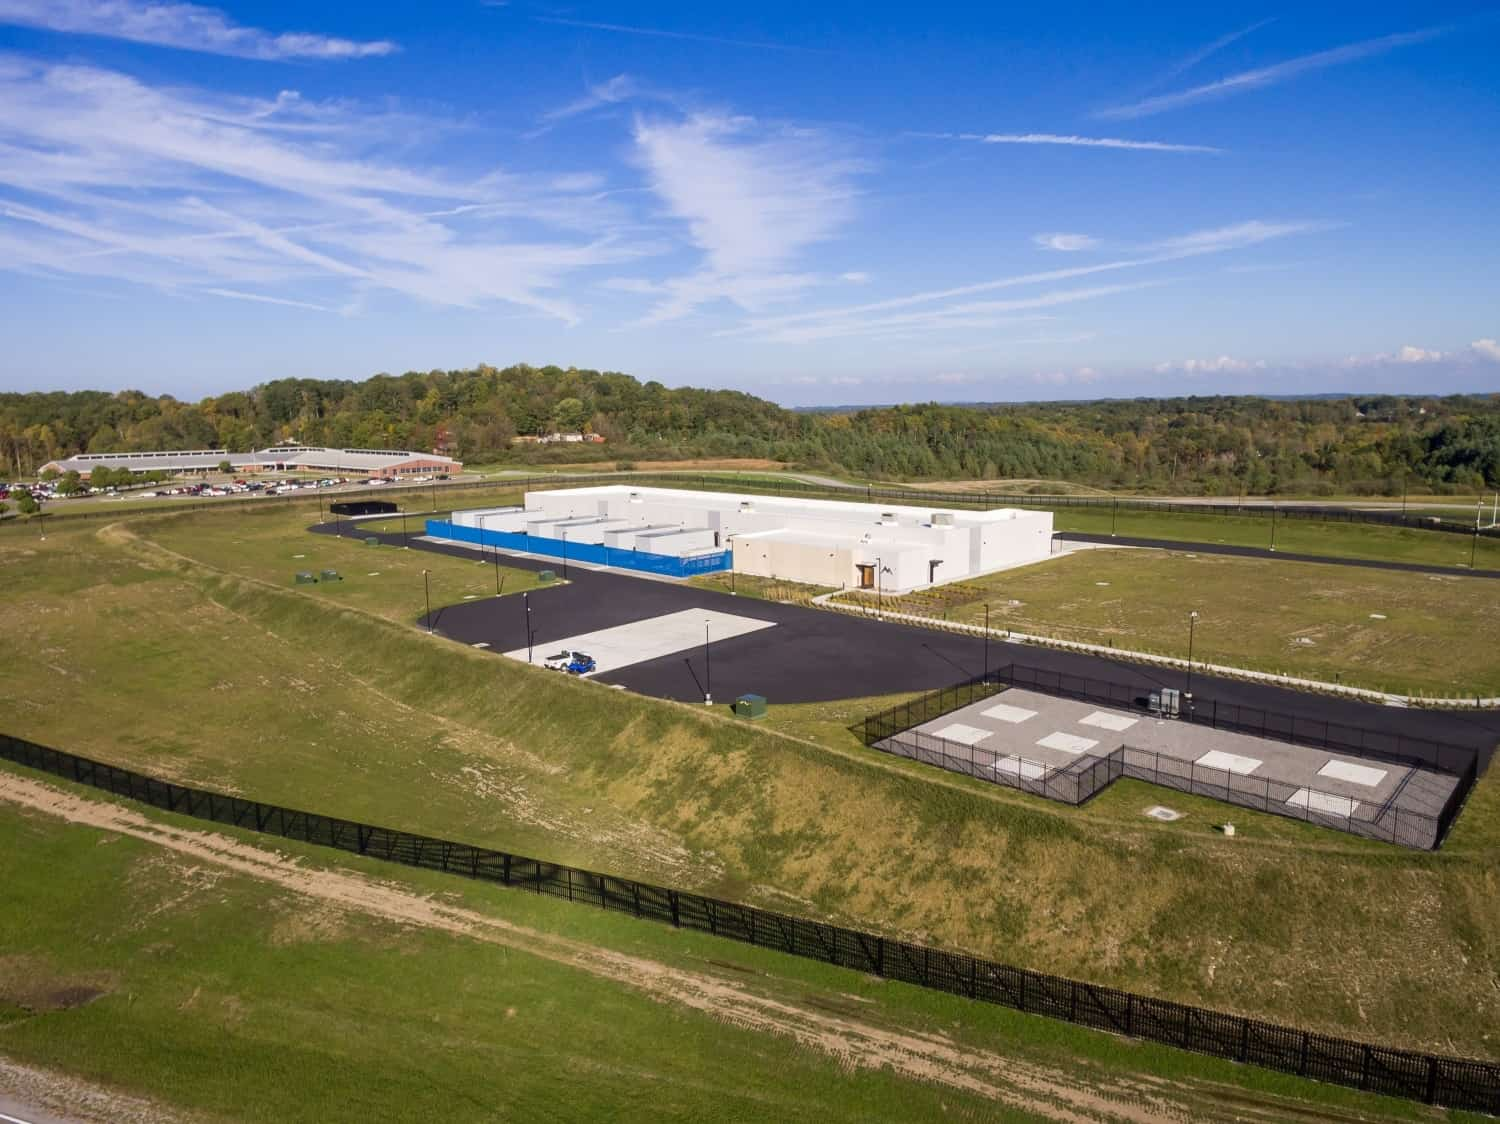 DP Facilities own Data Center and is located in Wise, Virginia